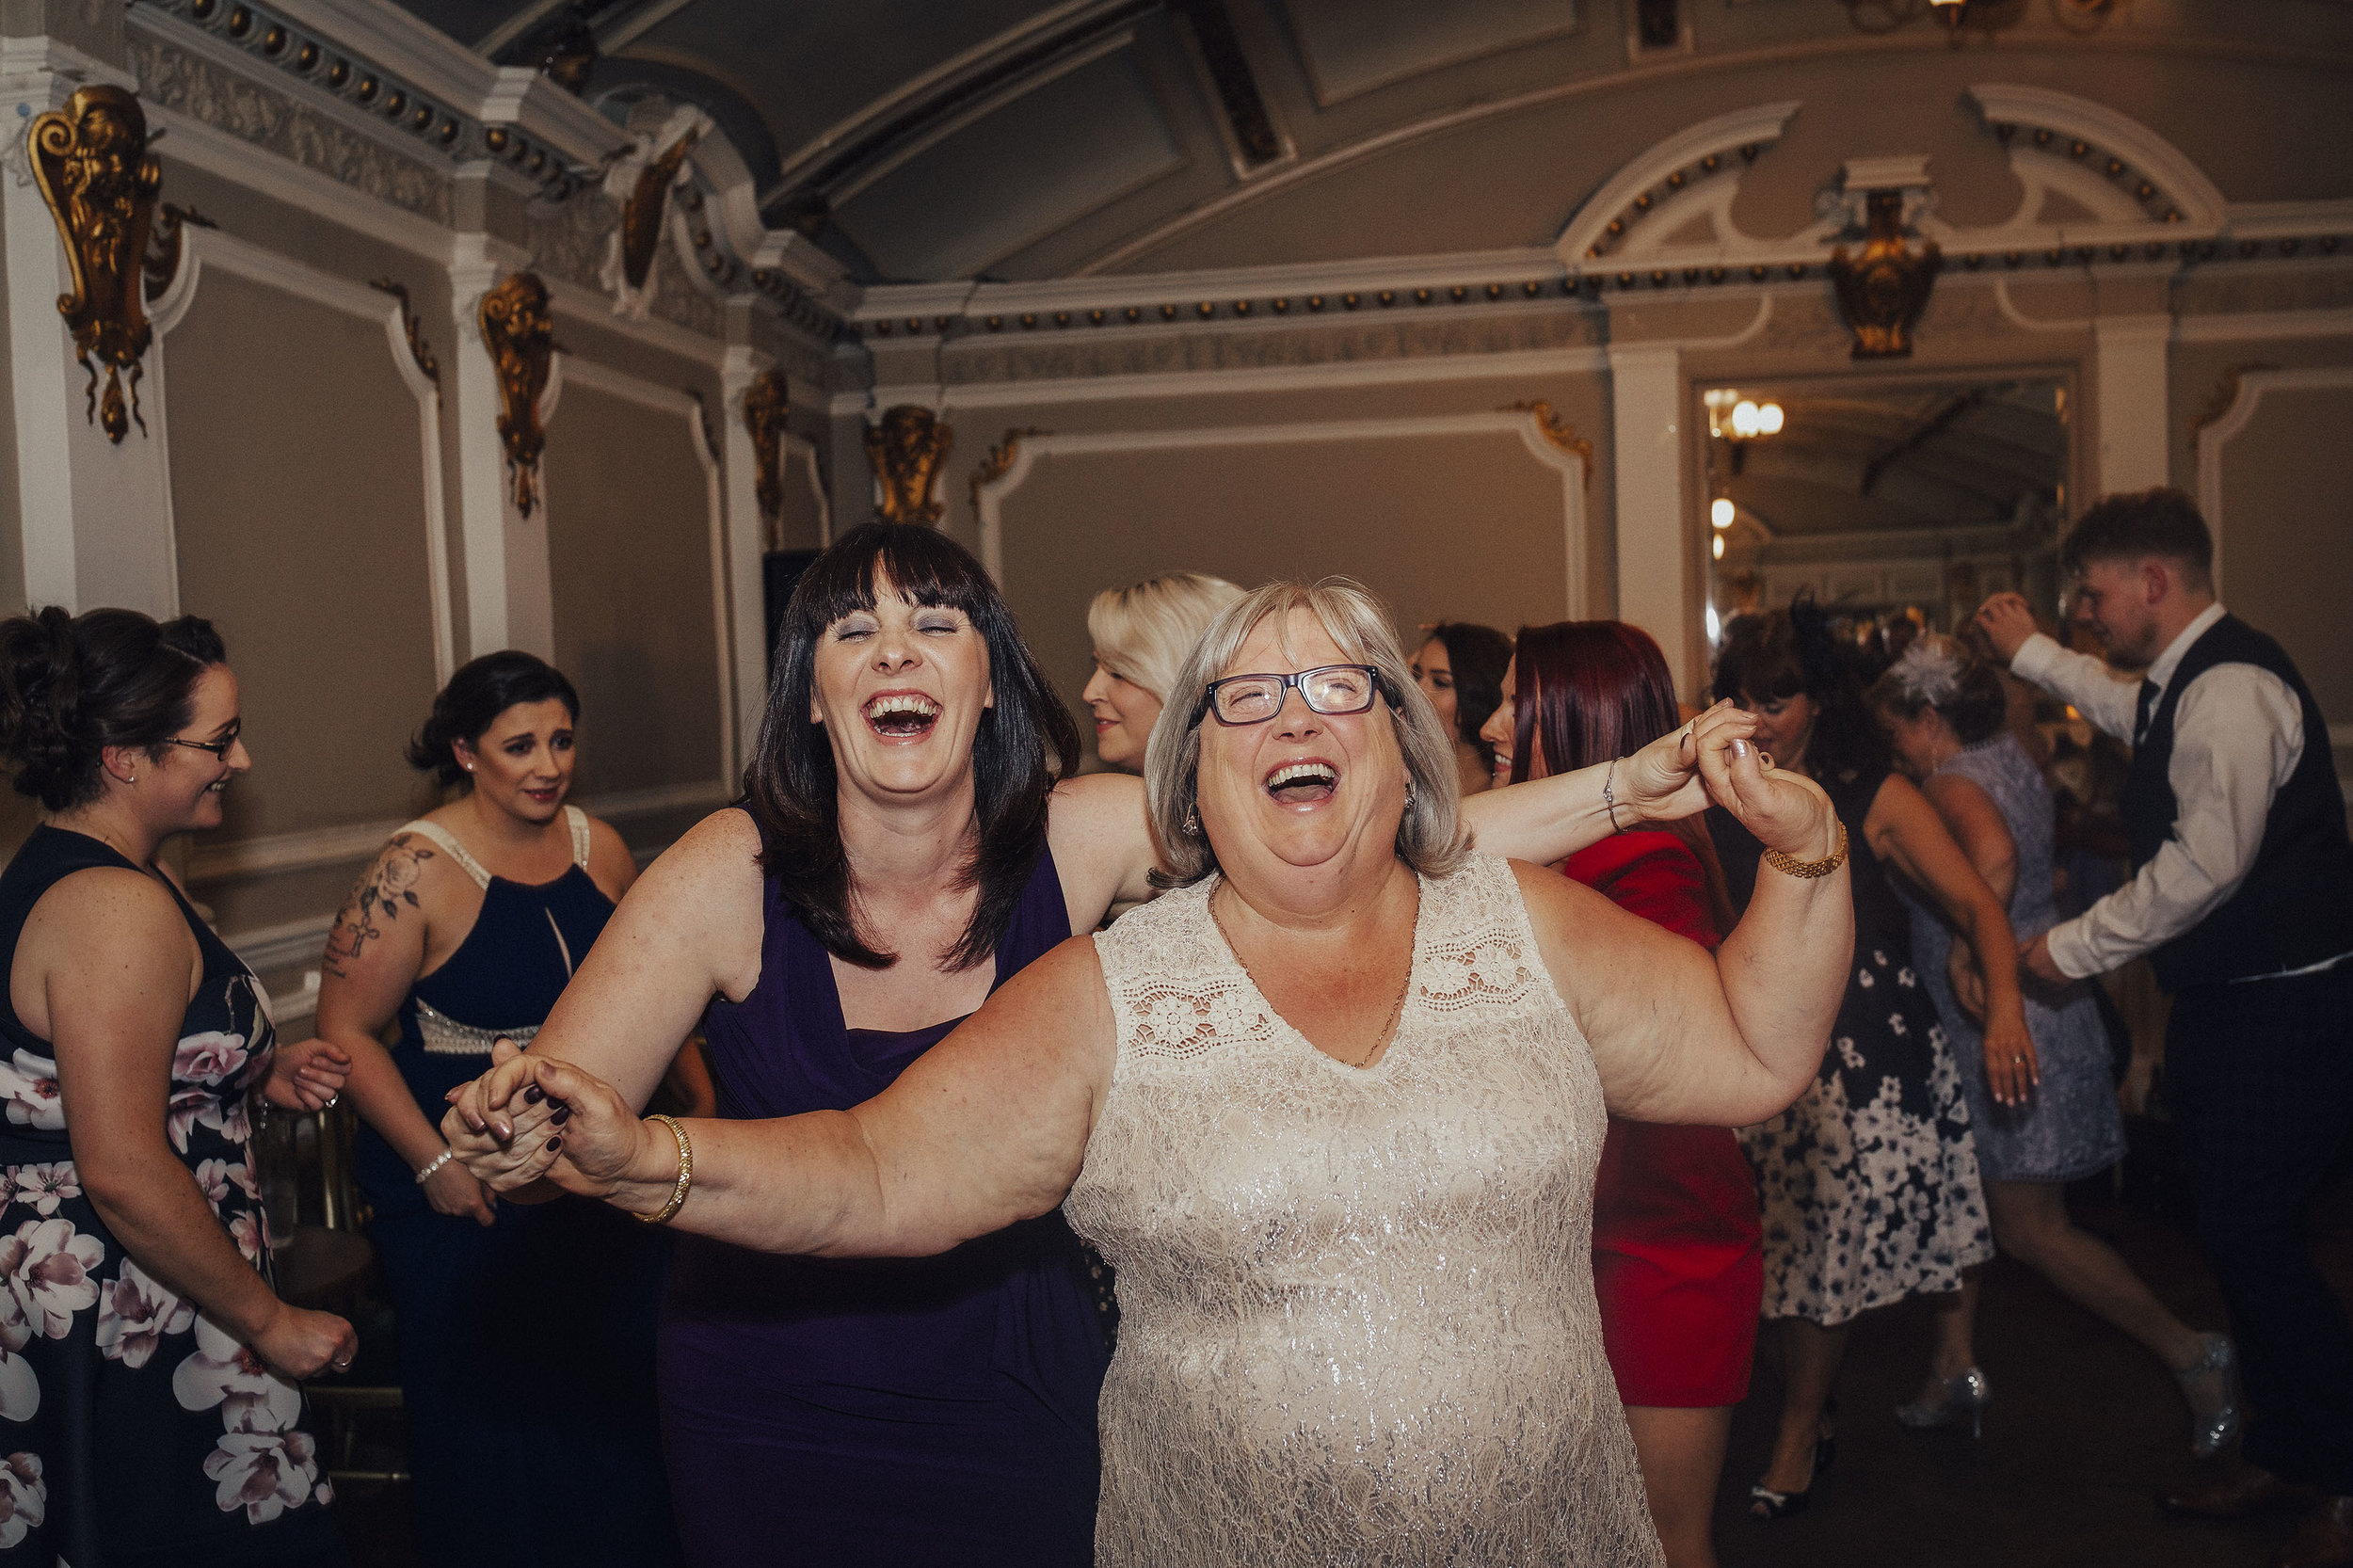 SAME_SEX_WEDDING_PHOTOGRAPHER_SLOANS_GLASGOW_PJ_PHILLIPS_PHOTOGRAPHY_98.jpg